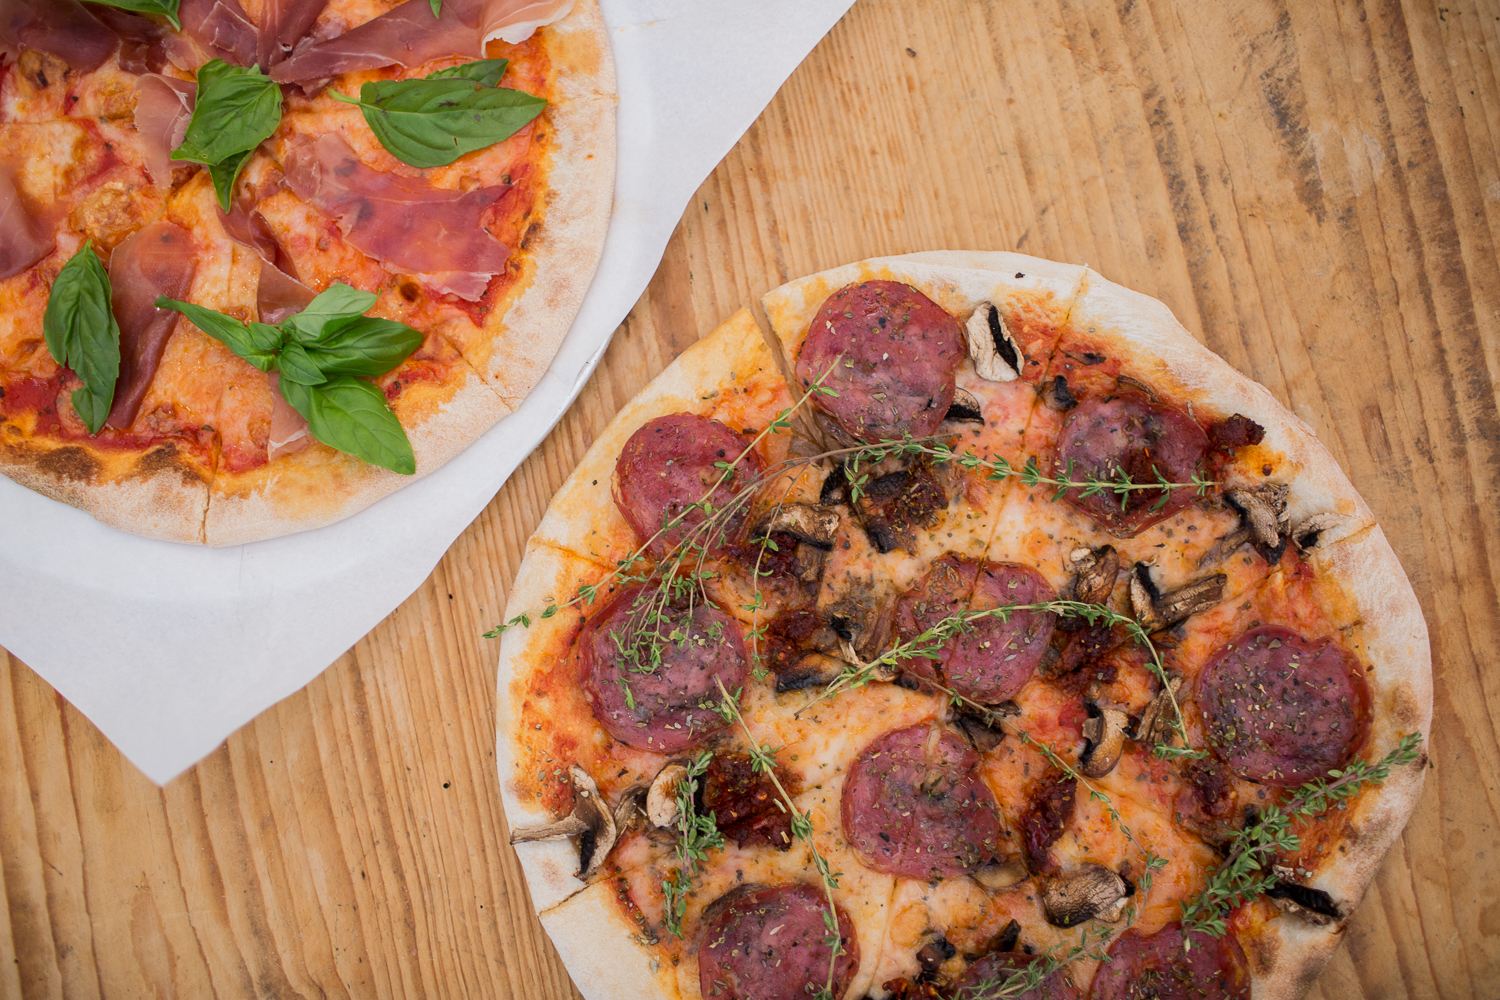 Our woodfired pizzas are the perfect accompaniment to our unique craft beers!